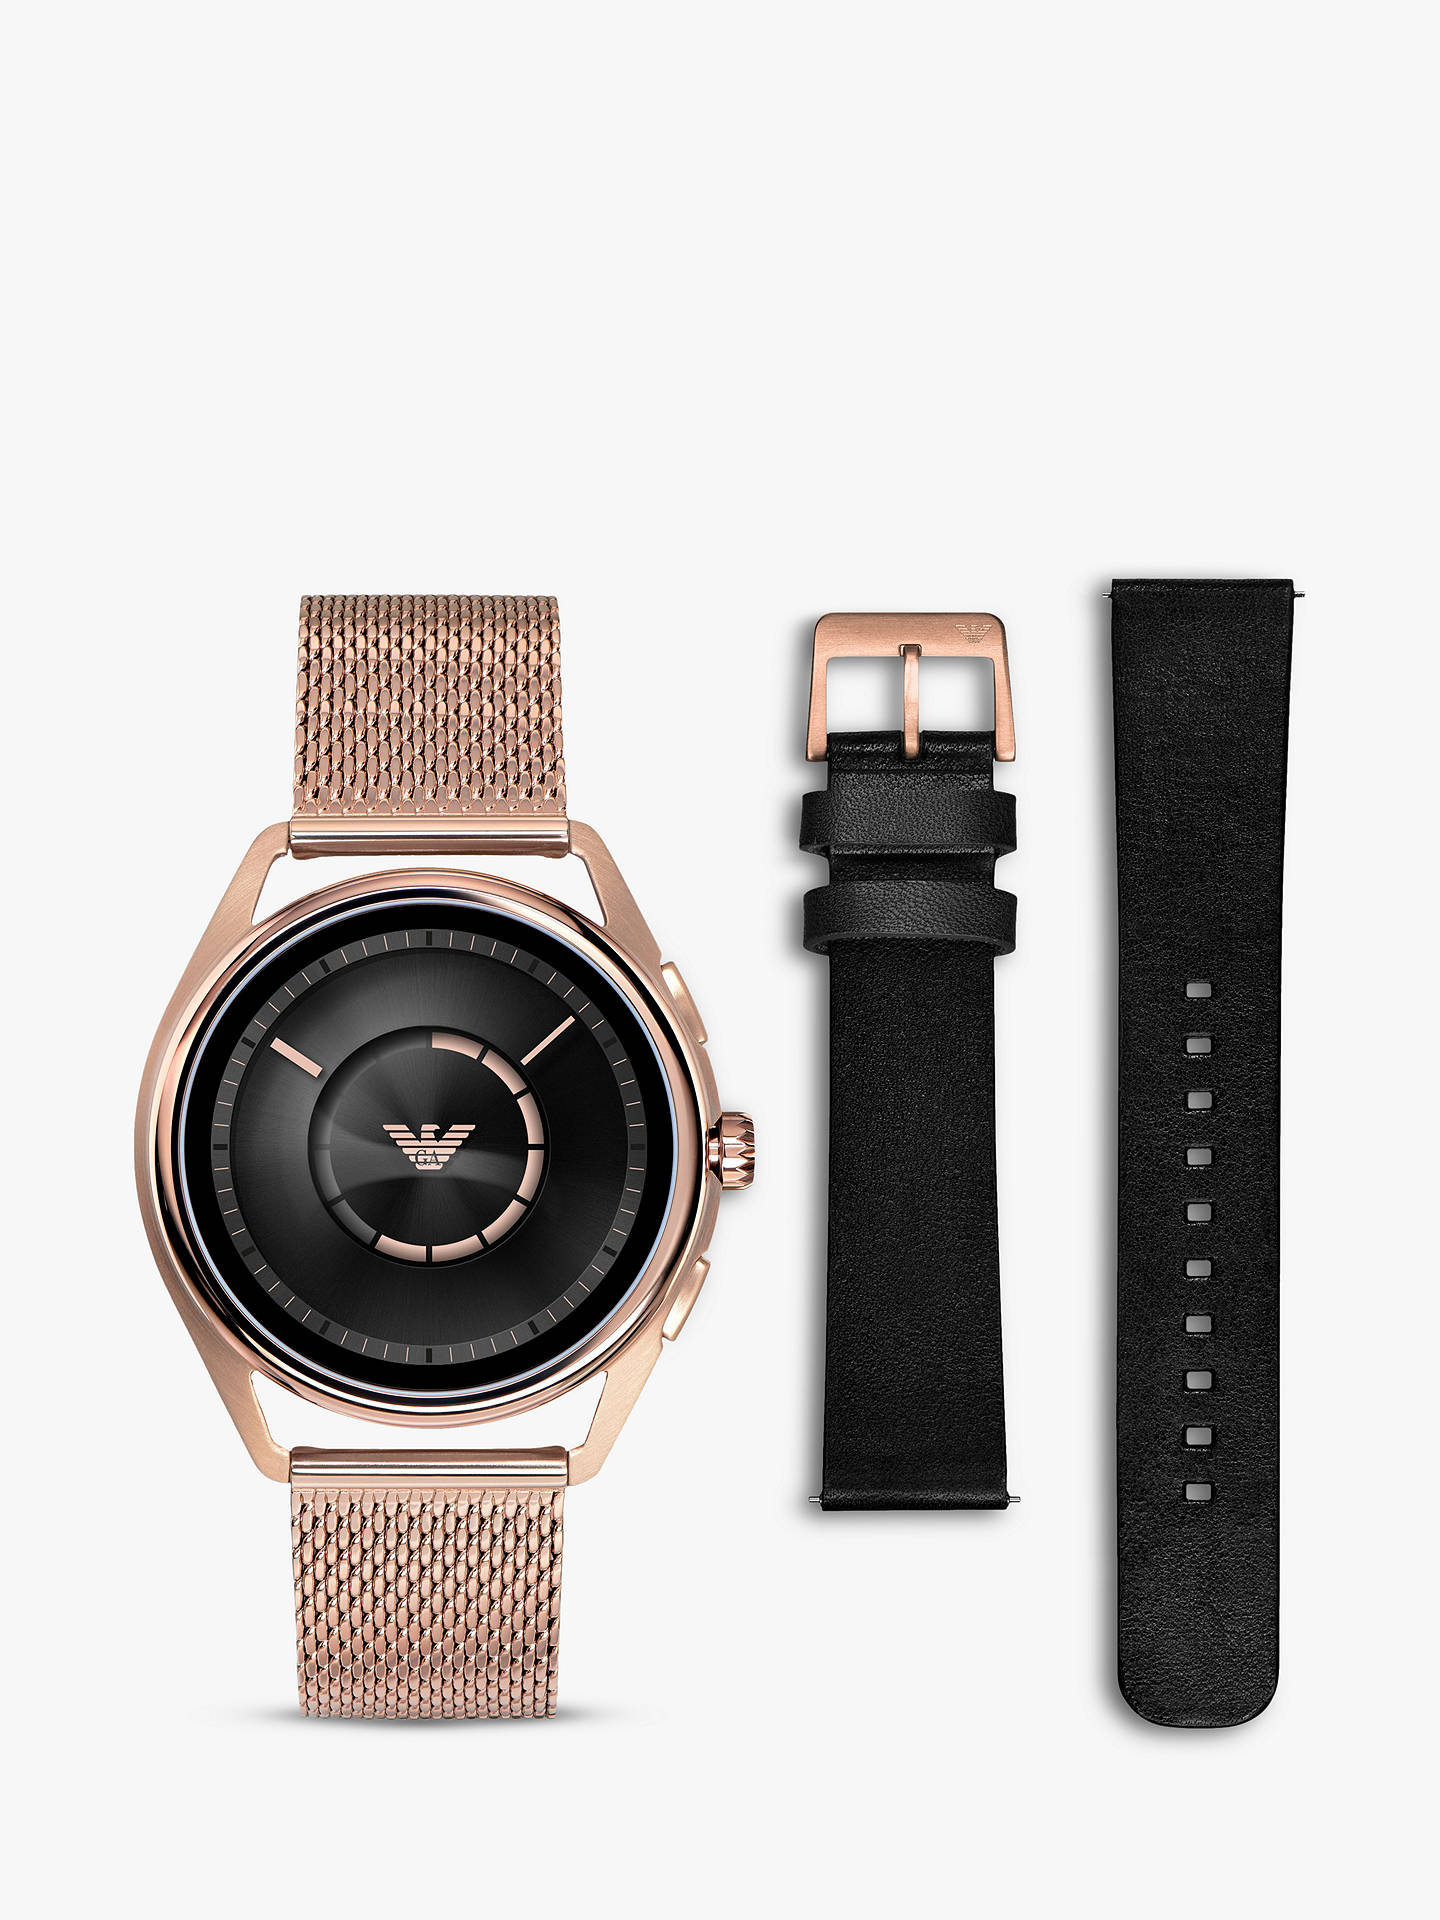 b1c9df2fc9 Emporio Armani Connected ART9005 Men's Touch Screen Mesh Bracelet and  Leather Strap Smartwatch, Rose Gold/Black